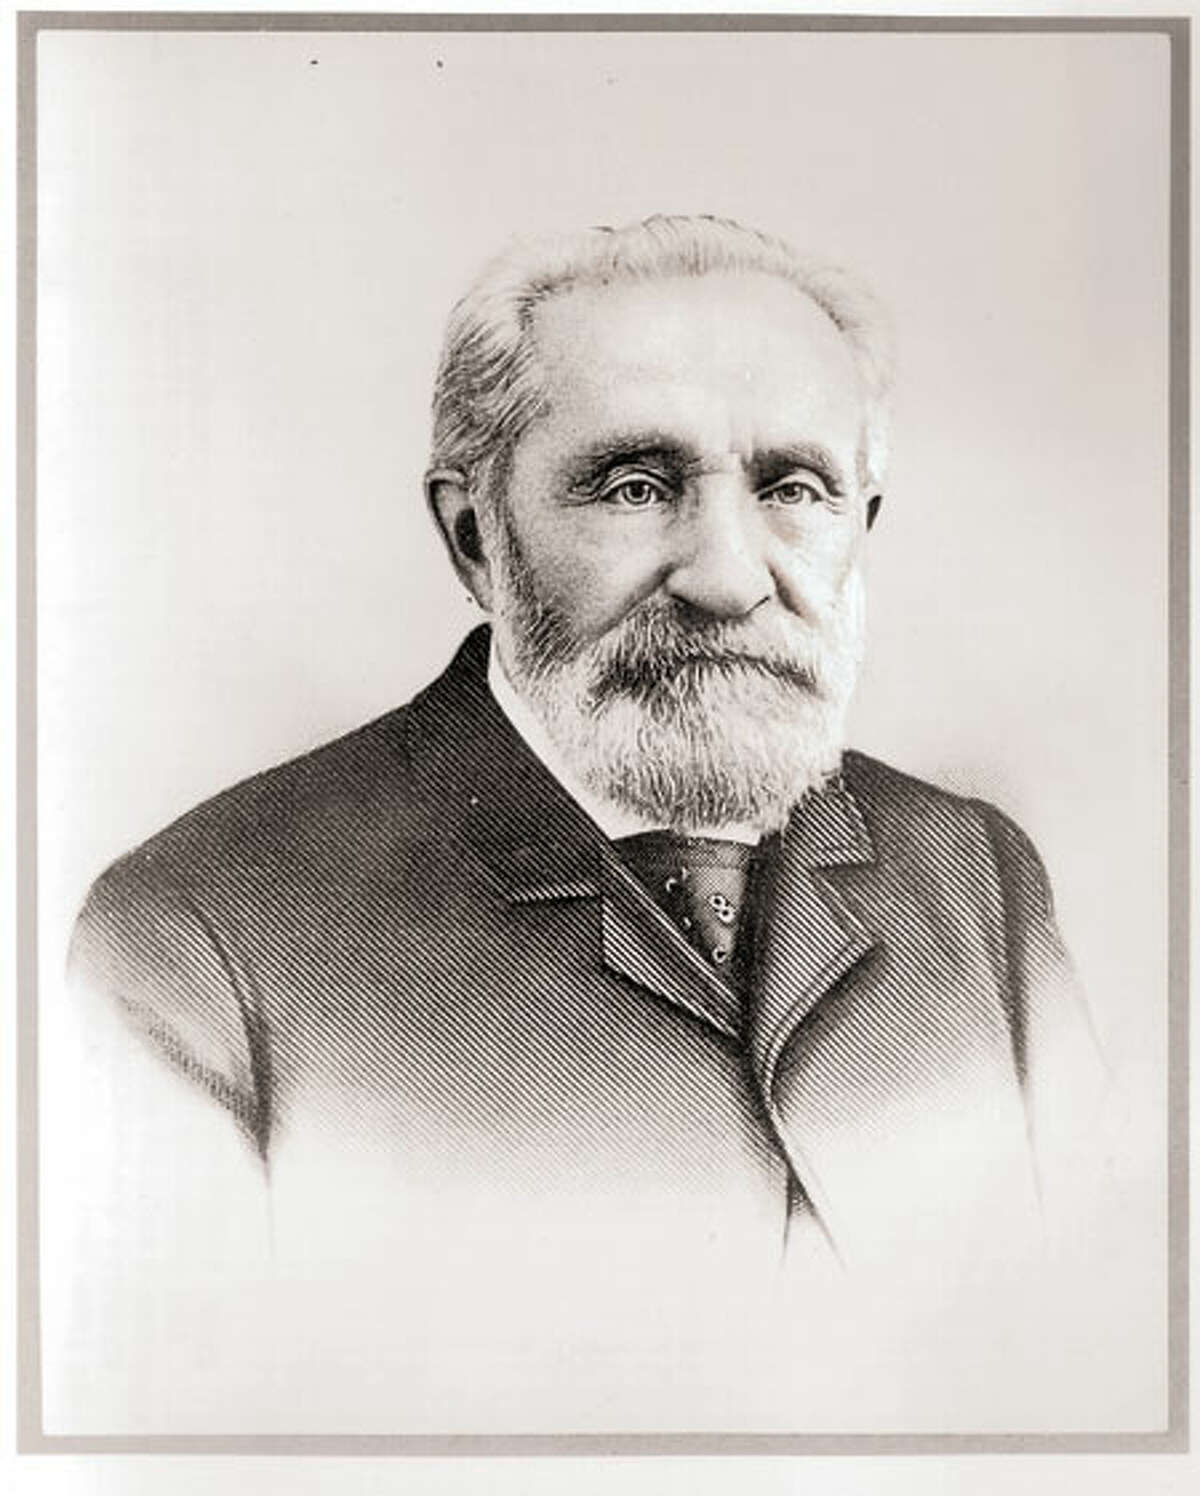 Henry Yesler, who arrived in Seattle in October 1852, was reputed to be the city's wealthiest resident during the 1880s.